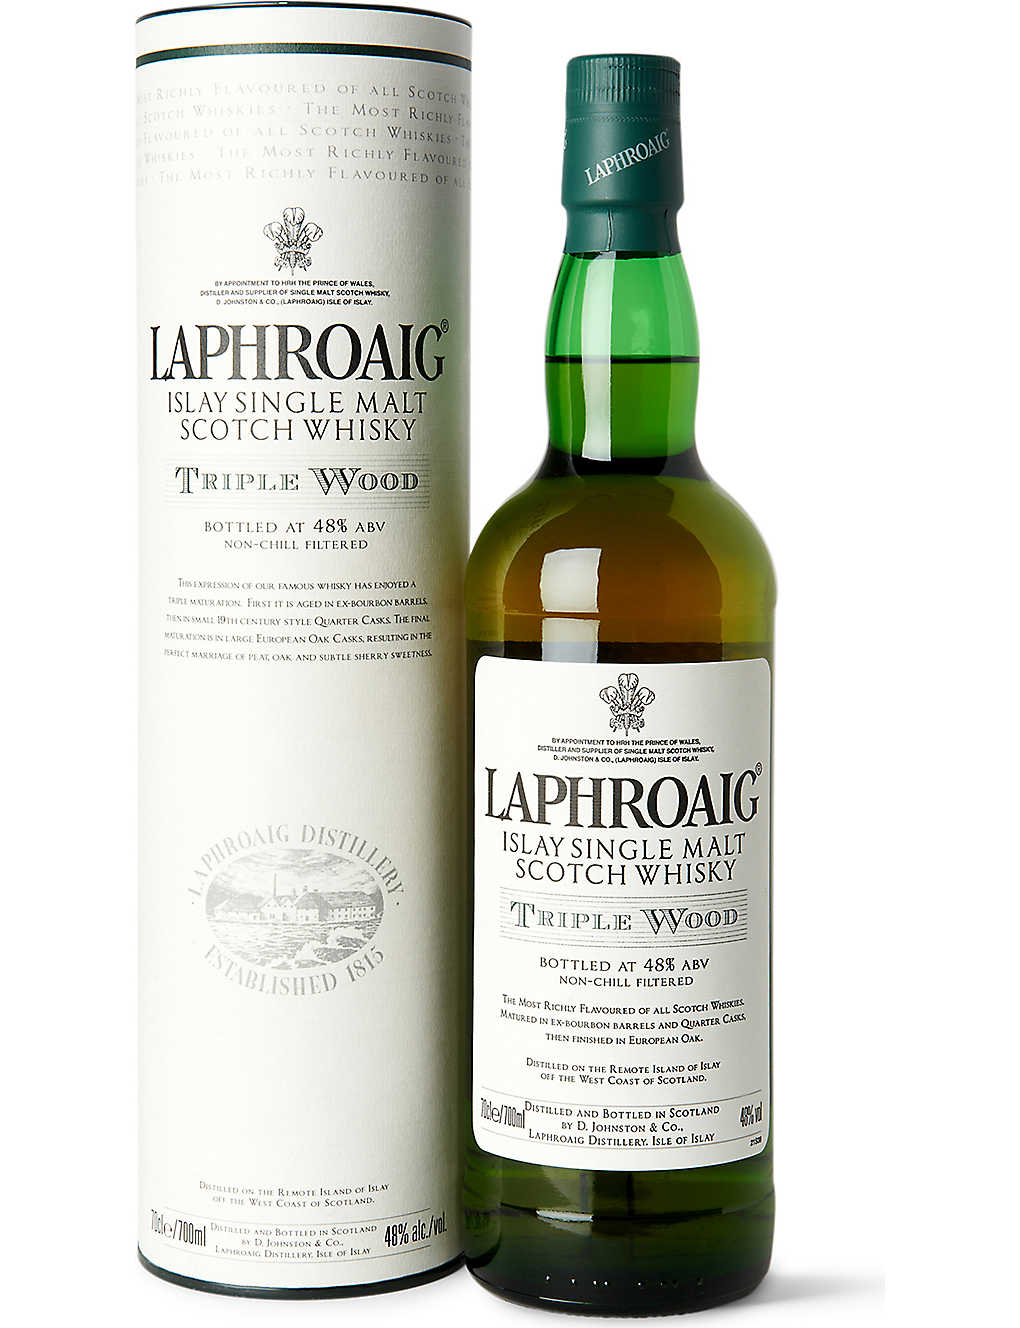 LAPHROAIG: Triple wood single malt Scotch whisky 700ml